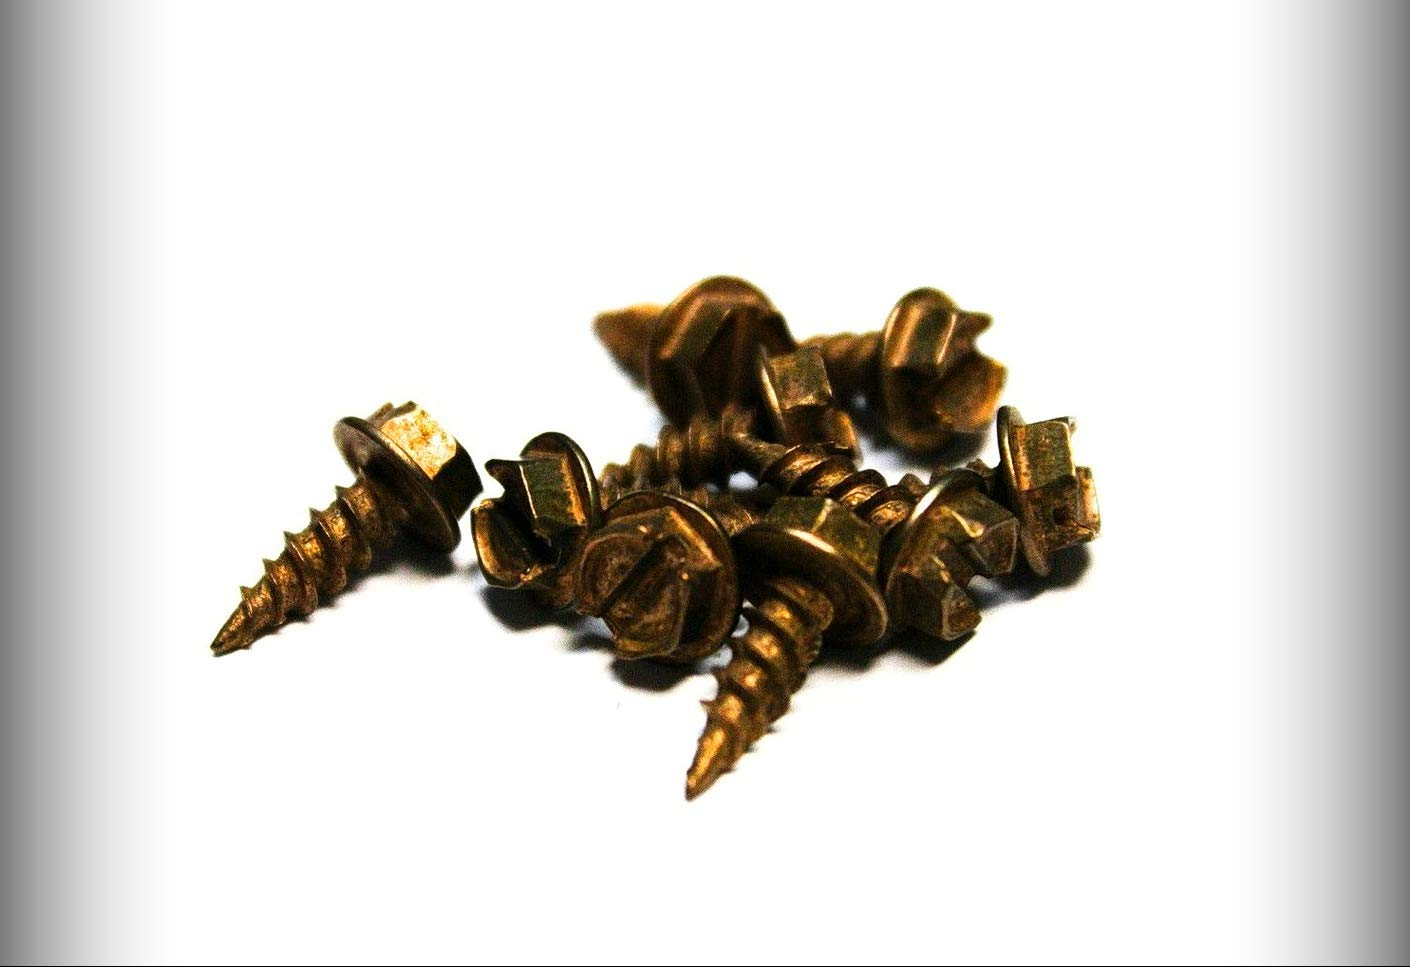 New Package of 100 (pcs) 8 x 1/2 Slotted Hex Head Sheet Metal Screws (Copper Plated) Set #TR-0673F Warranity by Pr-Mch